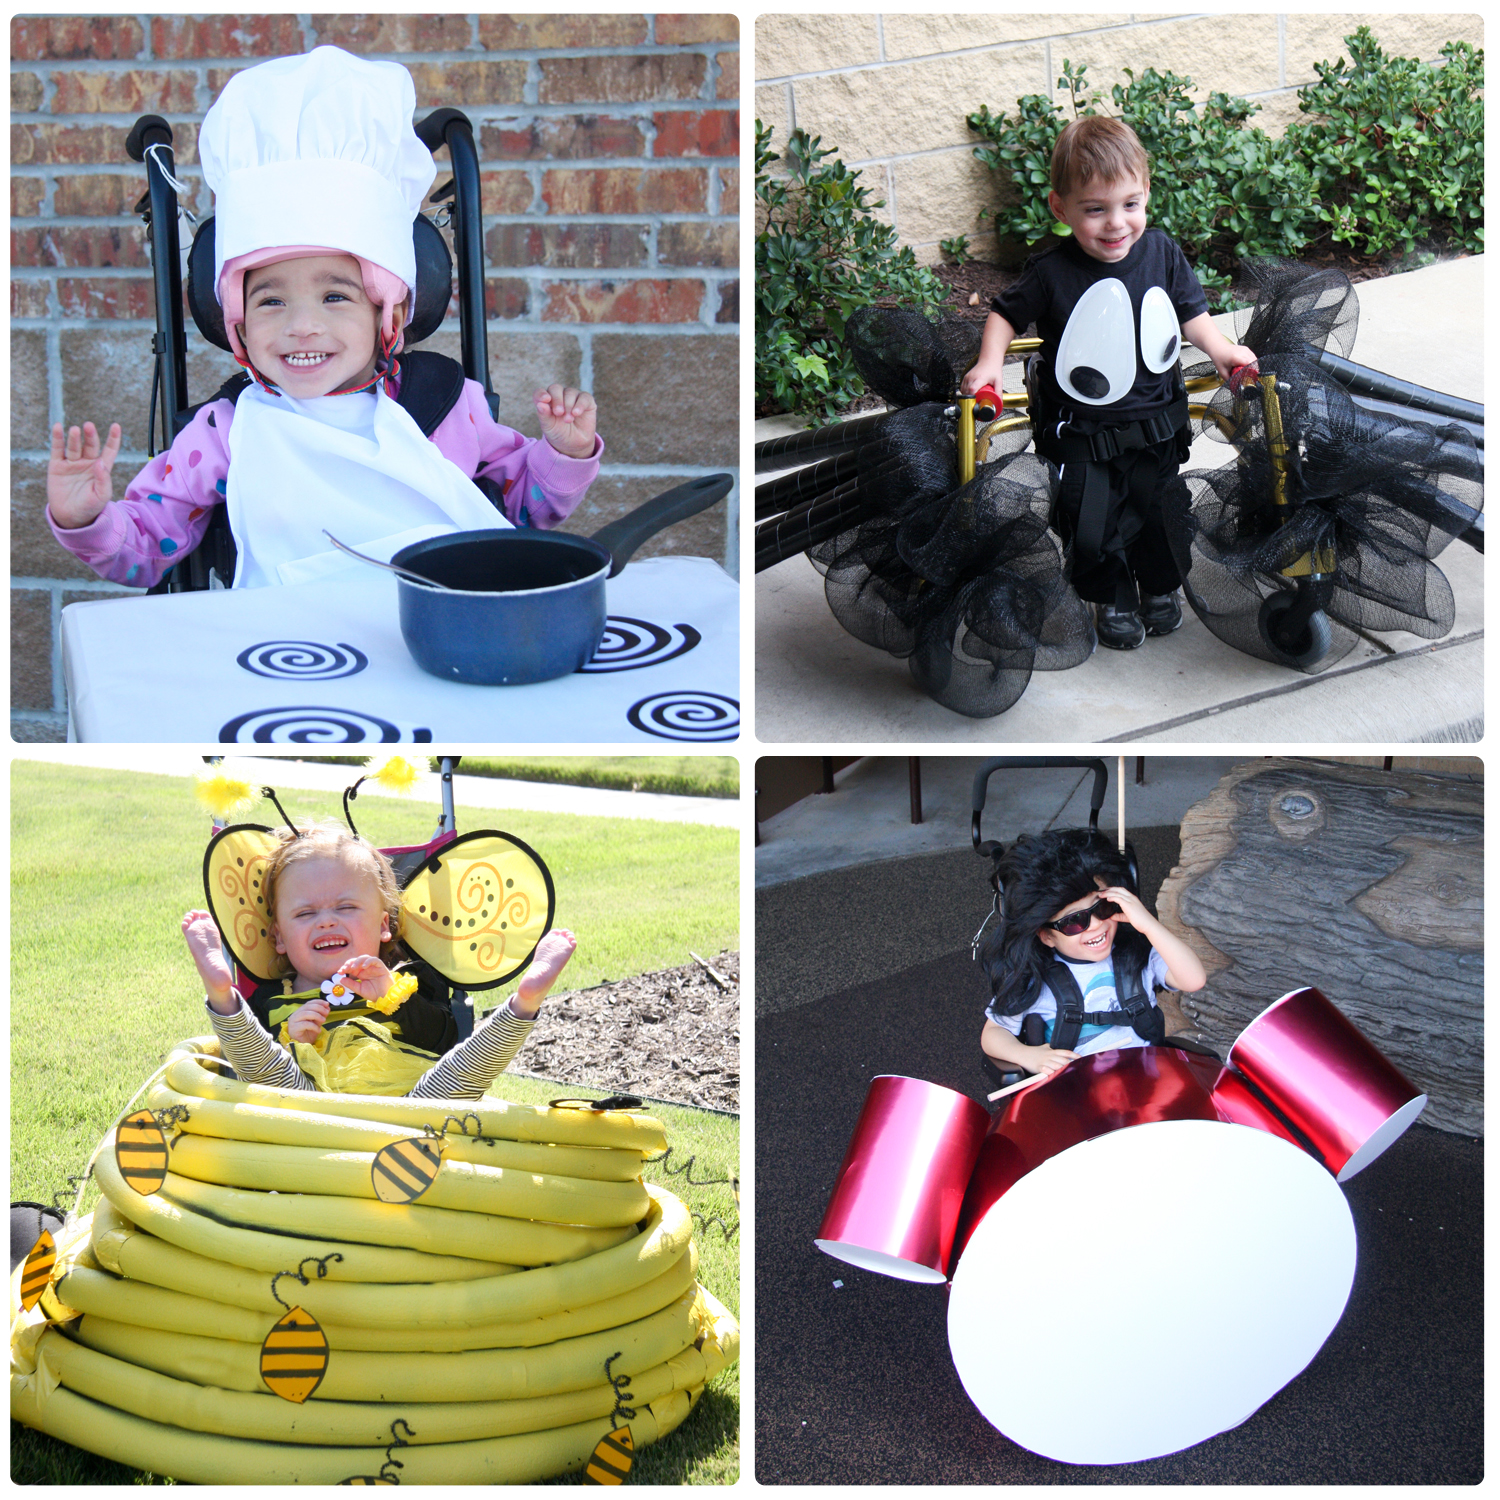 Halloween Costume Ideas for Wheelchairs and Walkers